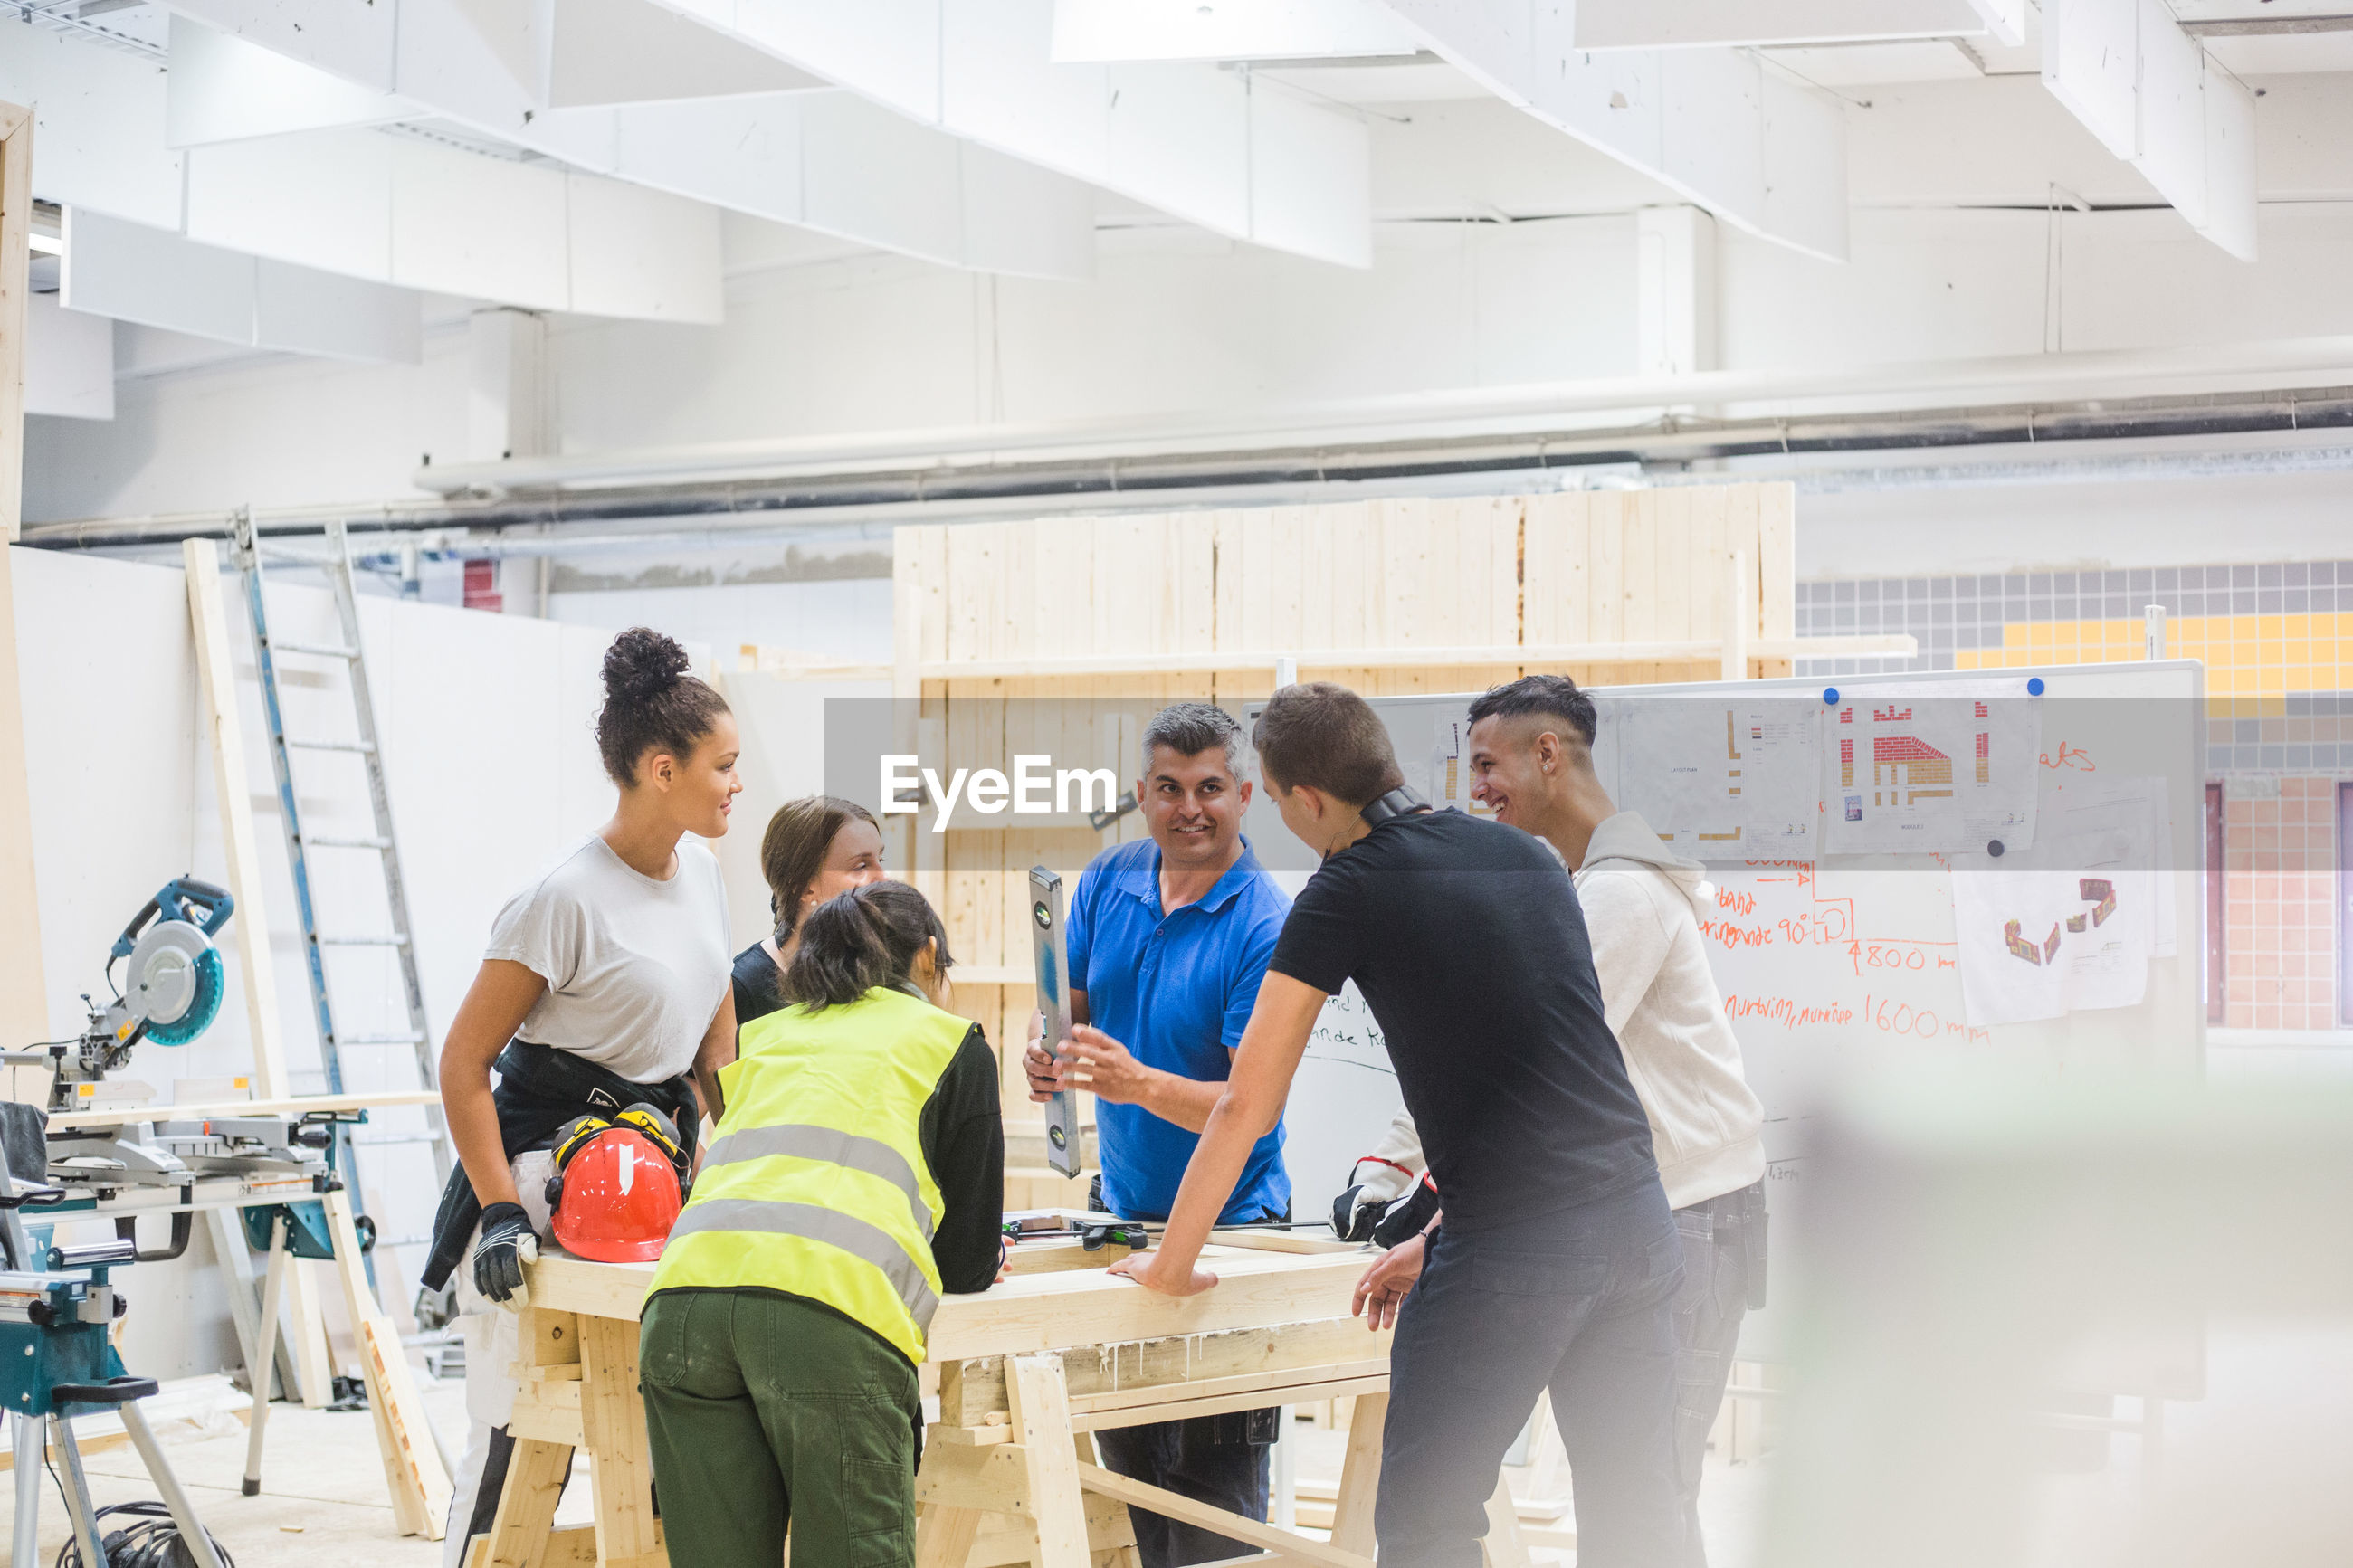 GROUP OF PEOPLE WORKING IN THE ROOM